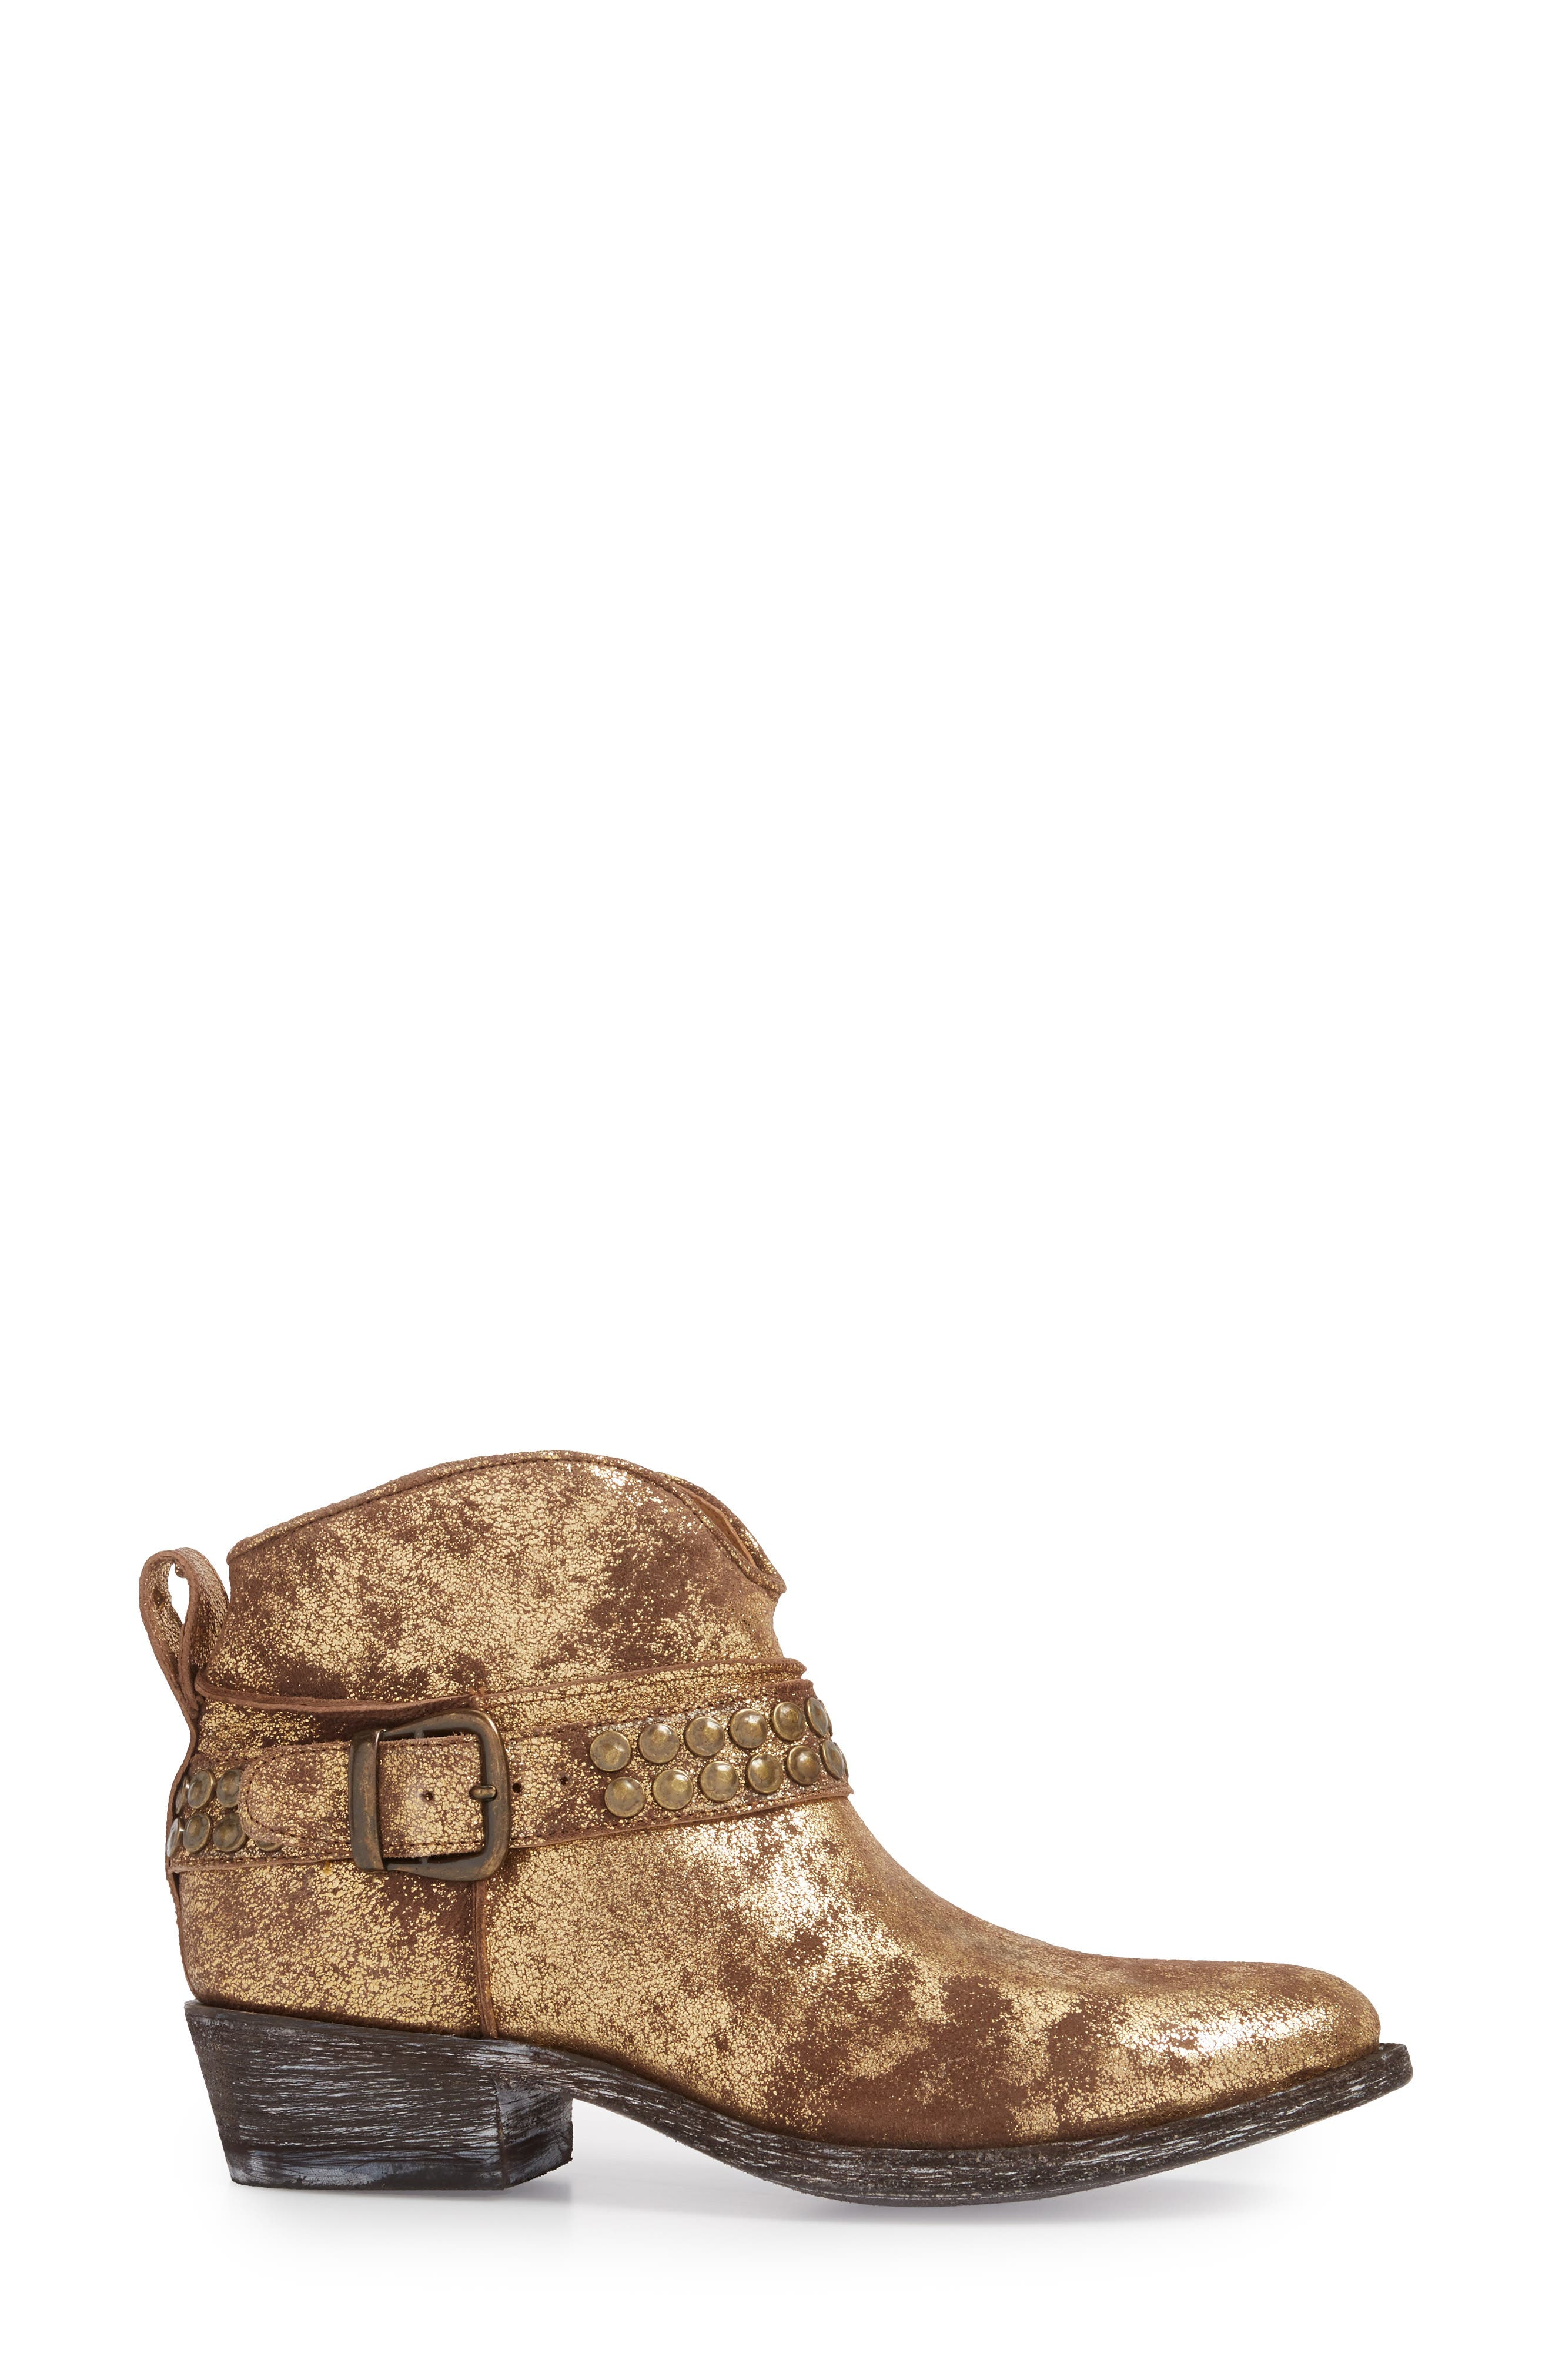 Serene Bootie,                             Alternate thumbnail 3, color,                             Gold Suede